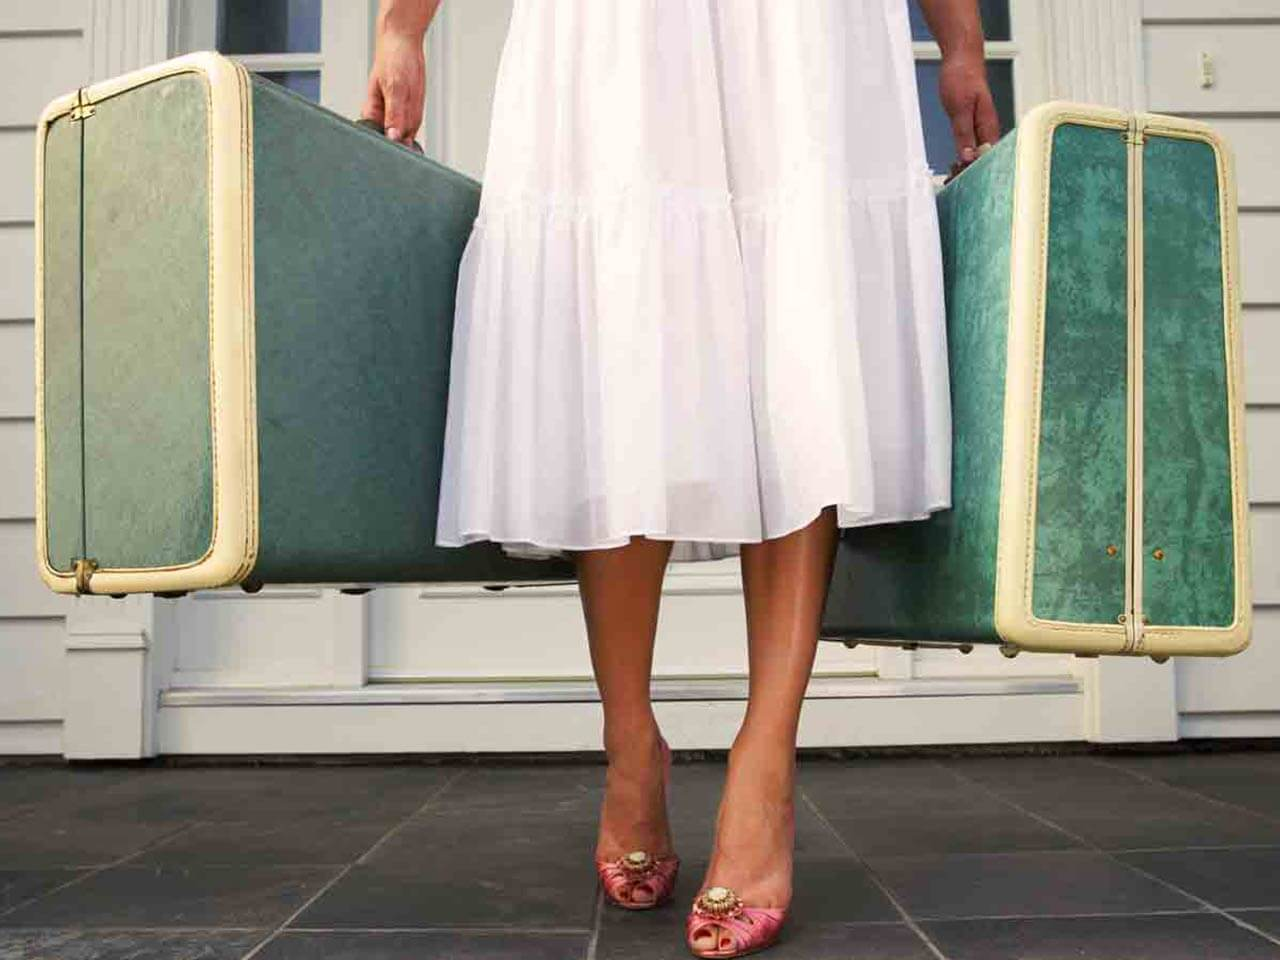 lady holding suitcases